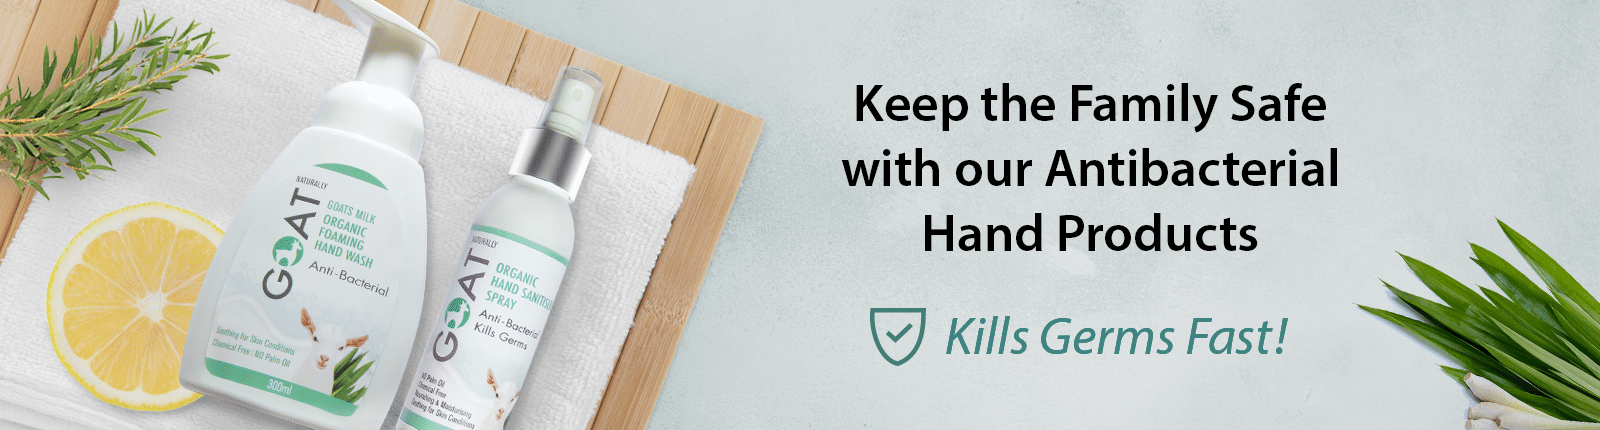 Protect You Family - Kill Those Germs